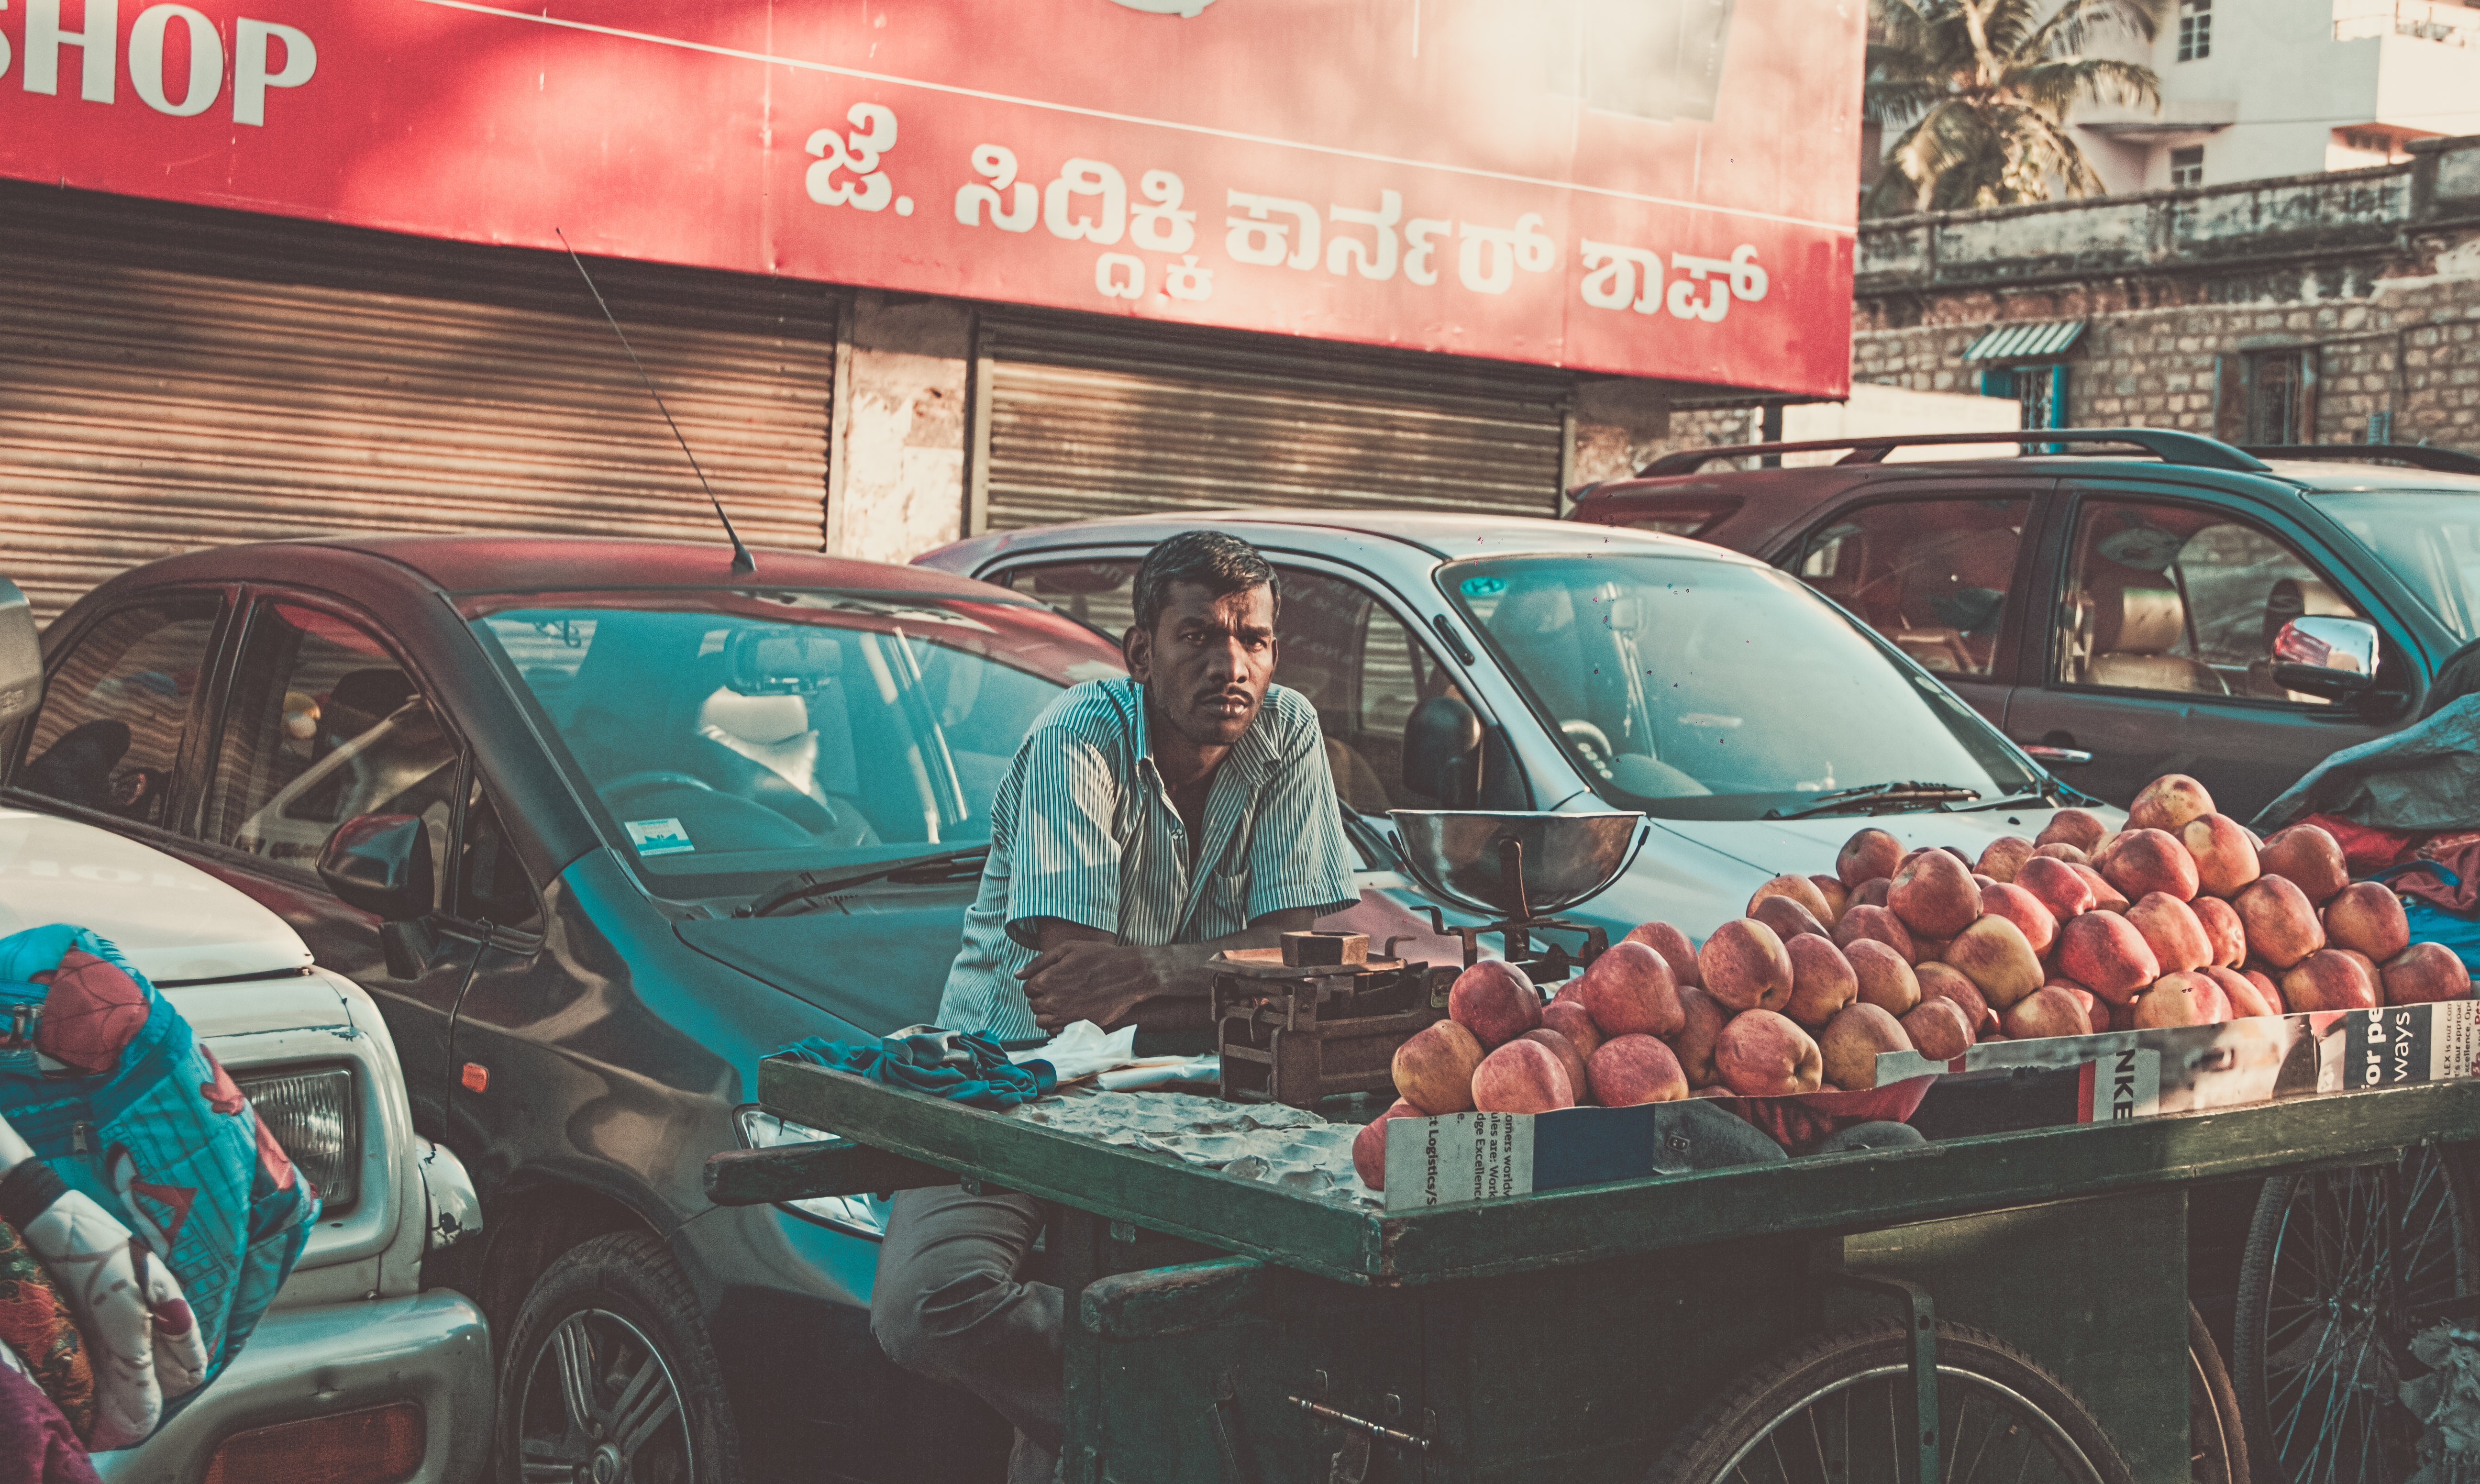 man vending apples near parked cars during daytime